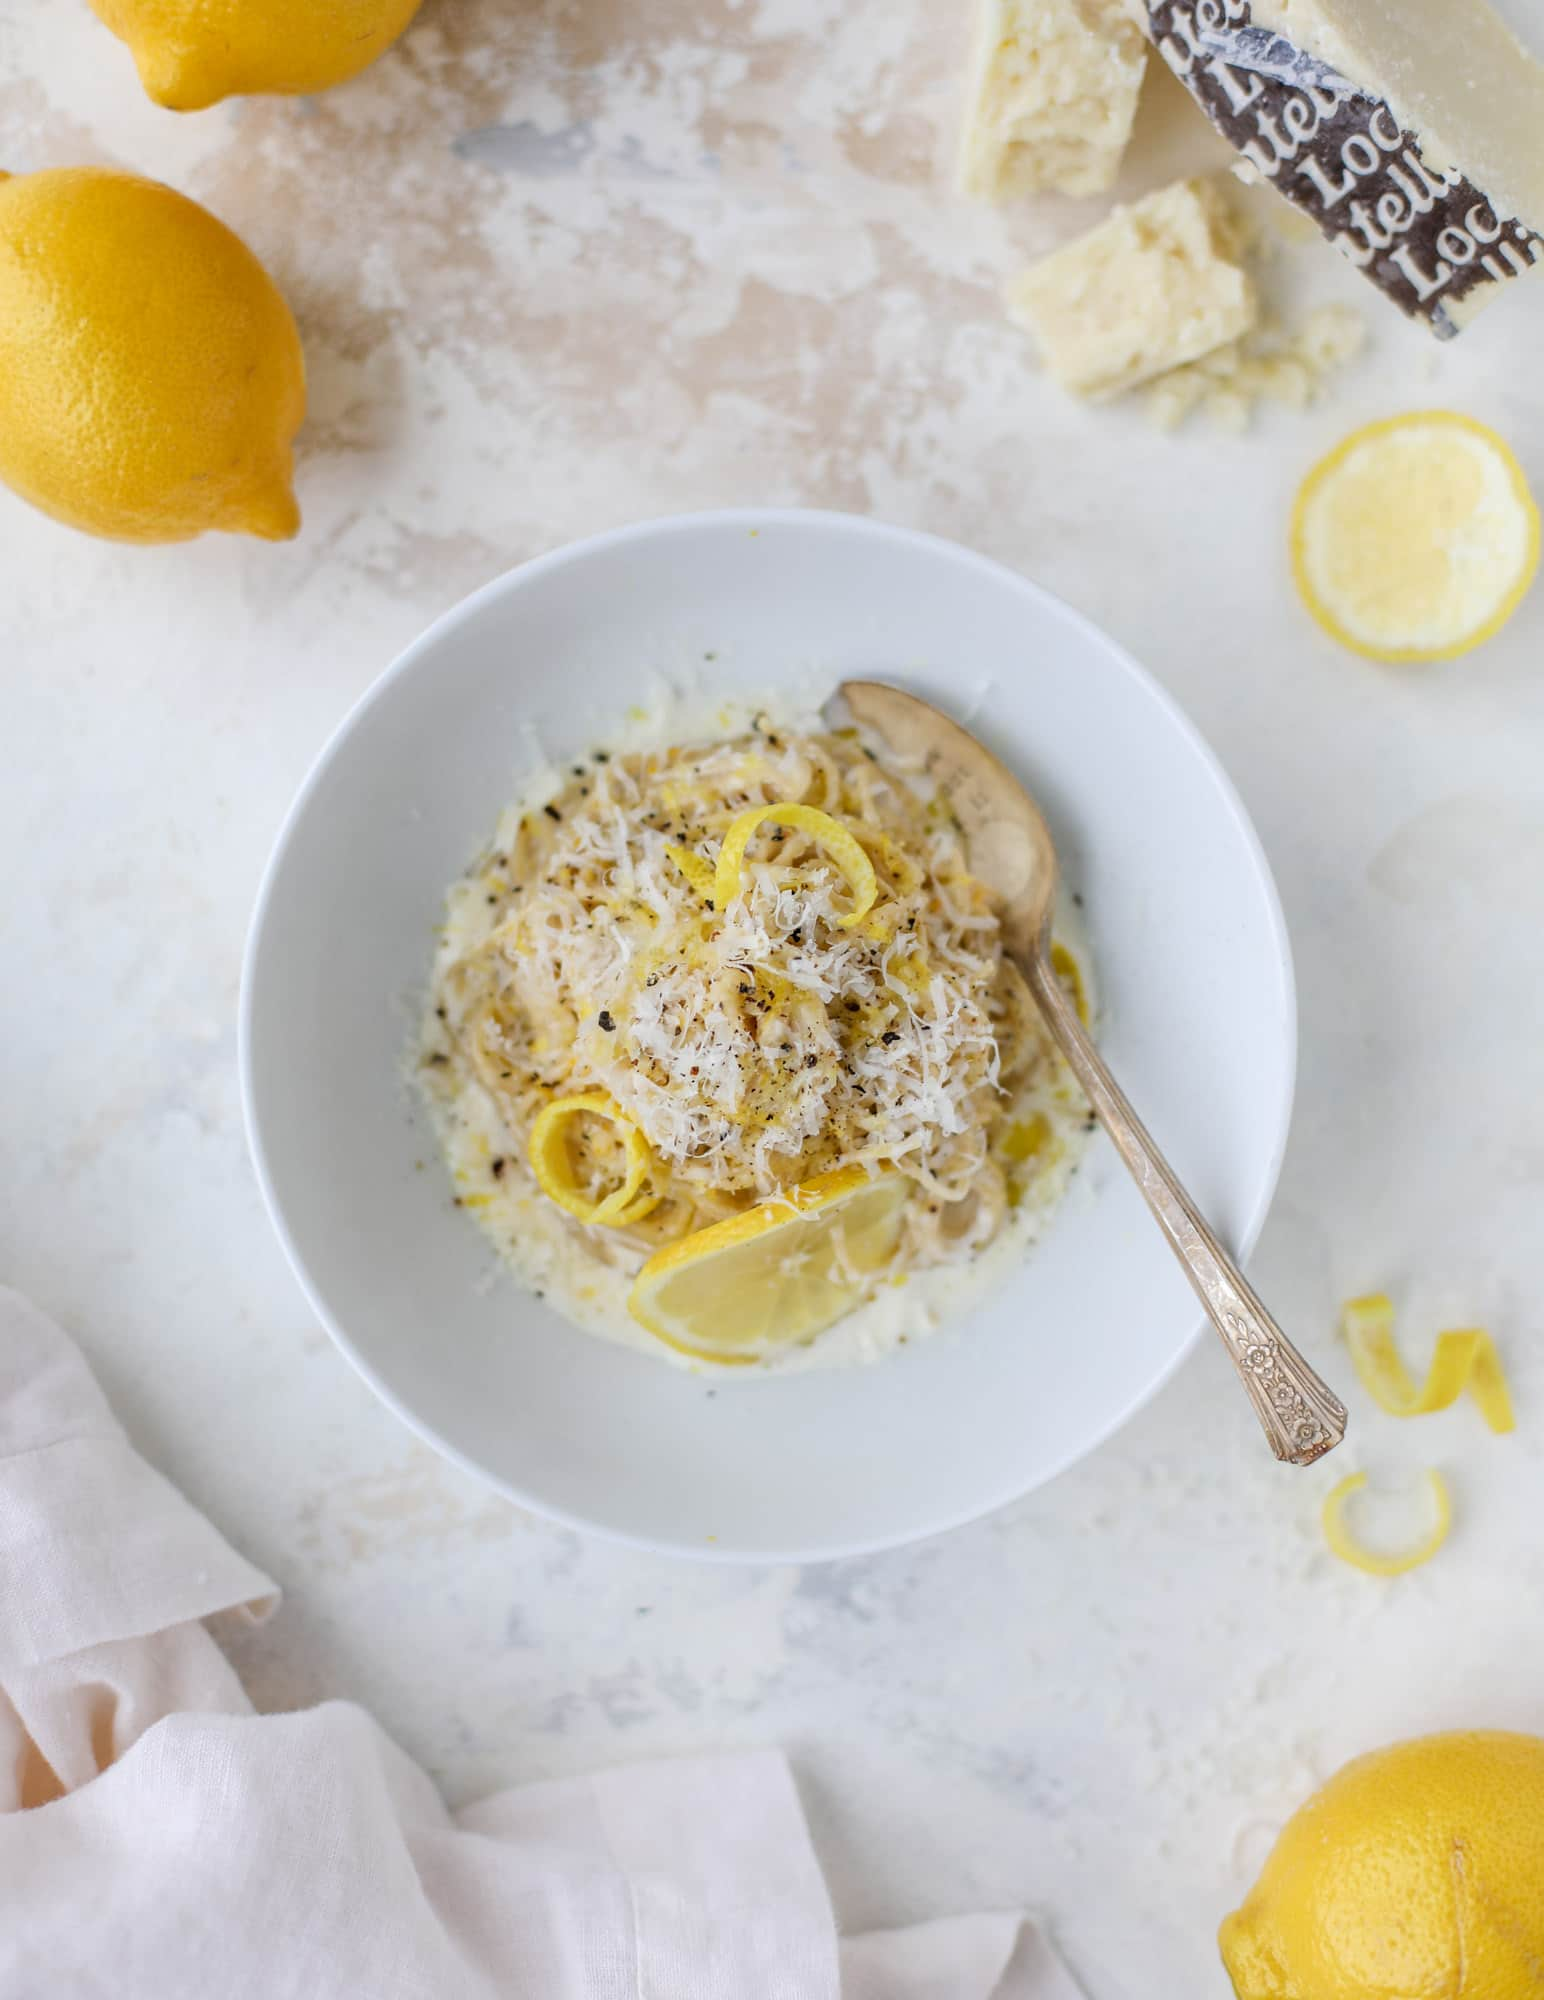 This cozy lemon pasta is light, refreshing and perfect for dinner when paired with a simple greens salad. It comes together in 20 minutes! I howsweeteats.com #lemon #pasta